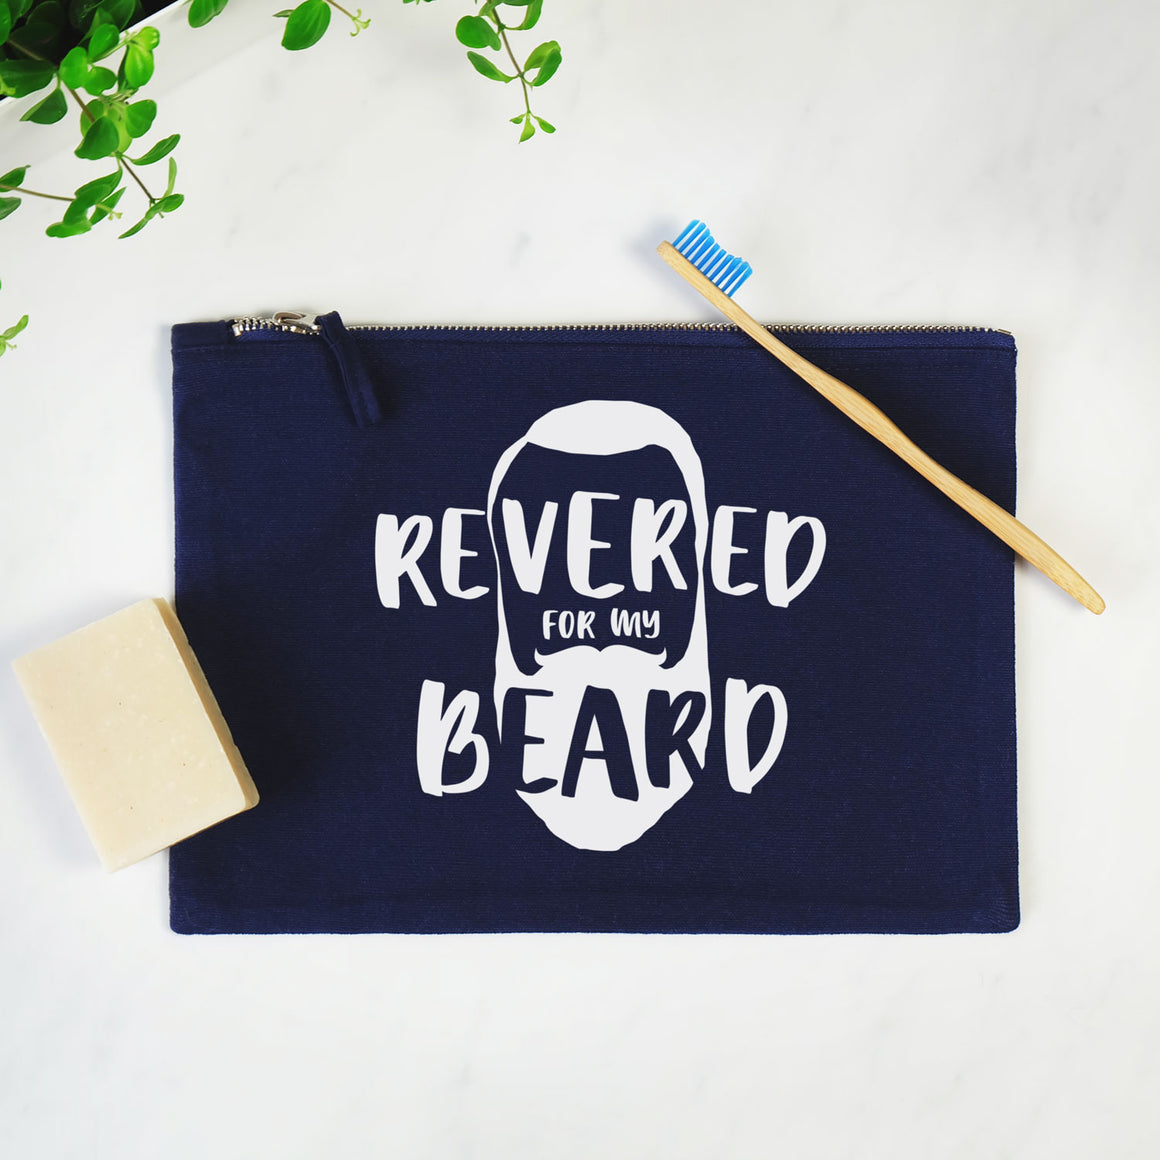 Revered For My Beard Washbag